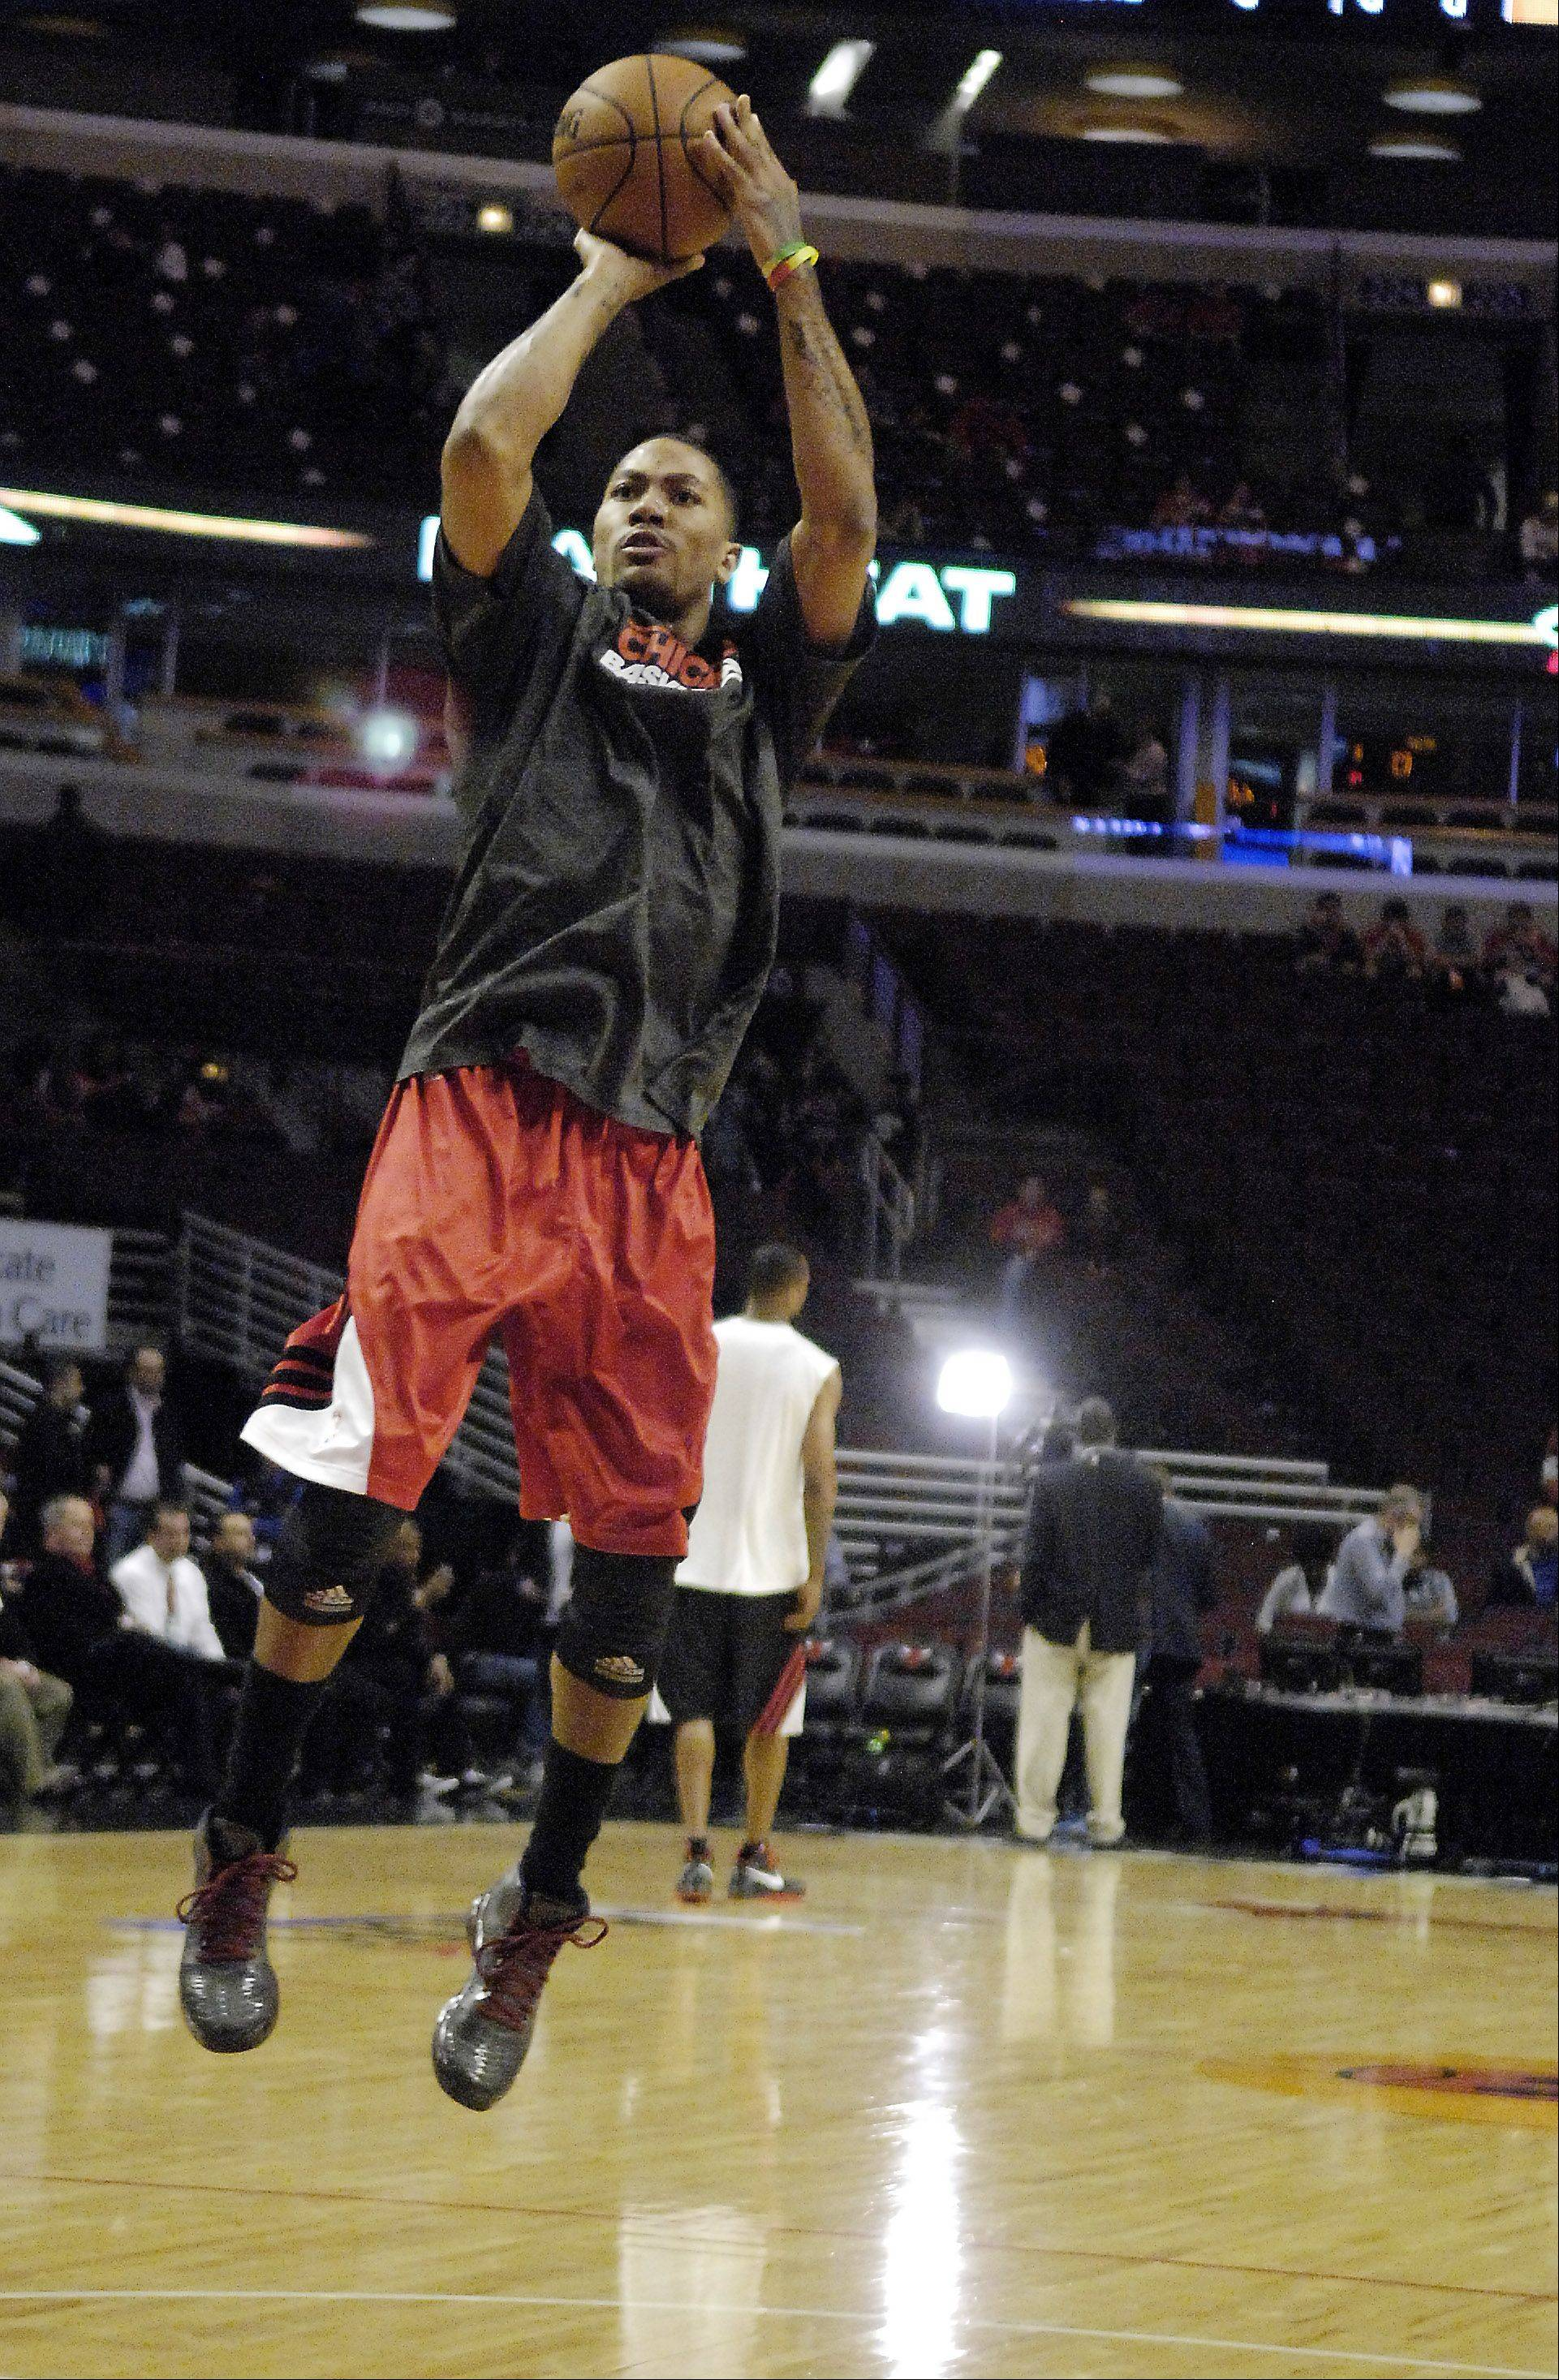 Derrick Rose says he will be ready to play when the Bulls open the preseason. Mike Imrem says, whoop-de-do!